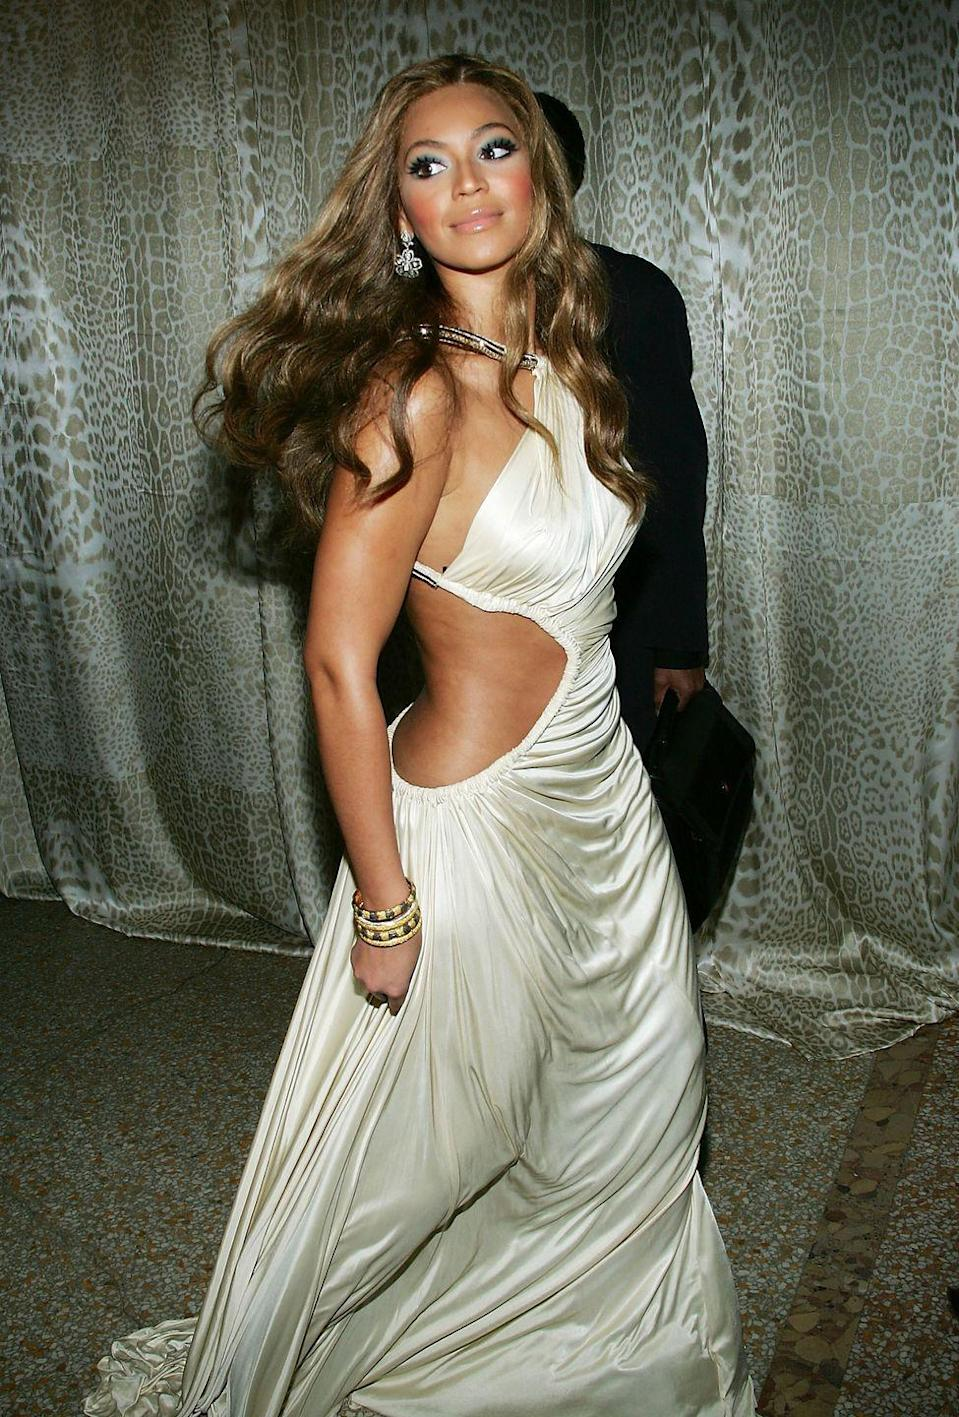 <p>We all know and love Beyoncé, but notably the most influential time for her style was the early 2000s as she broke away from Destiny's Child and developed her own career. Her take on the 2000s' trends was always classic and elegant.</p>